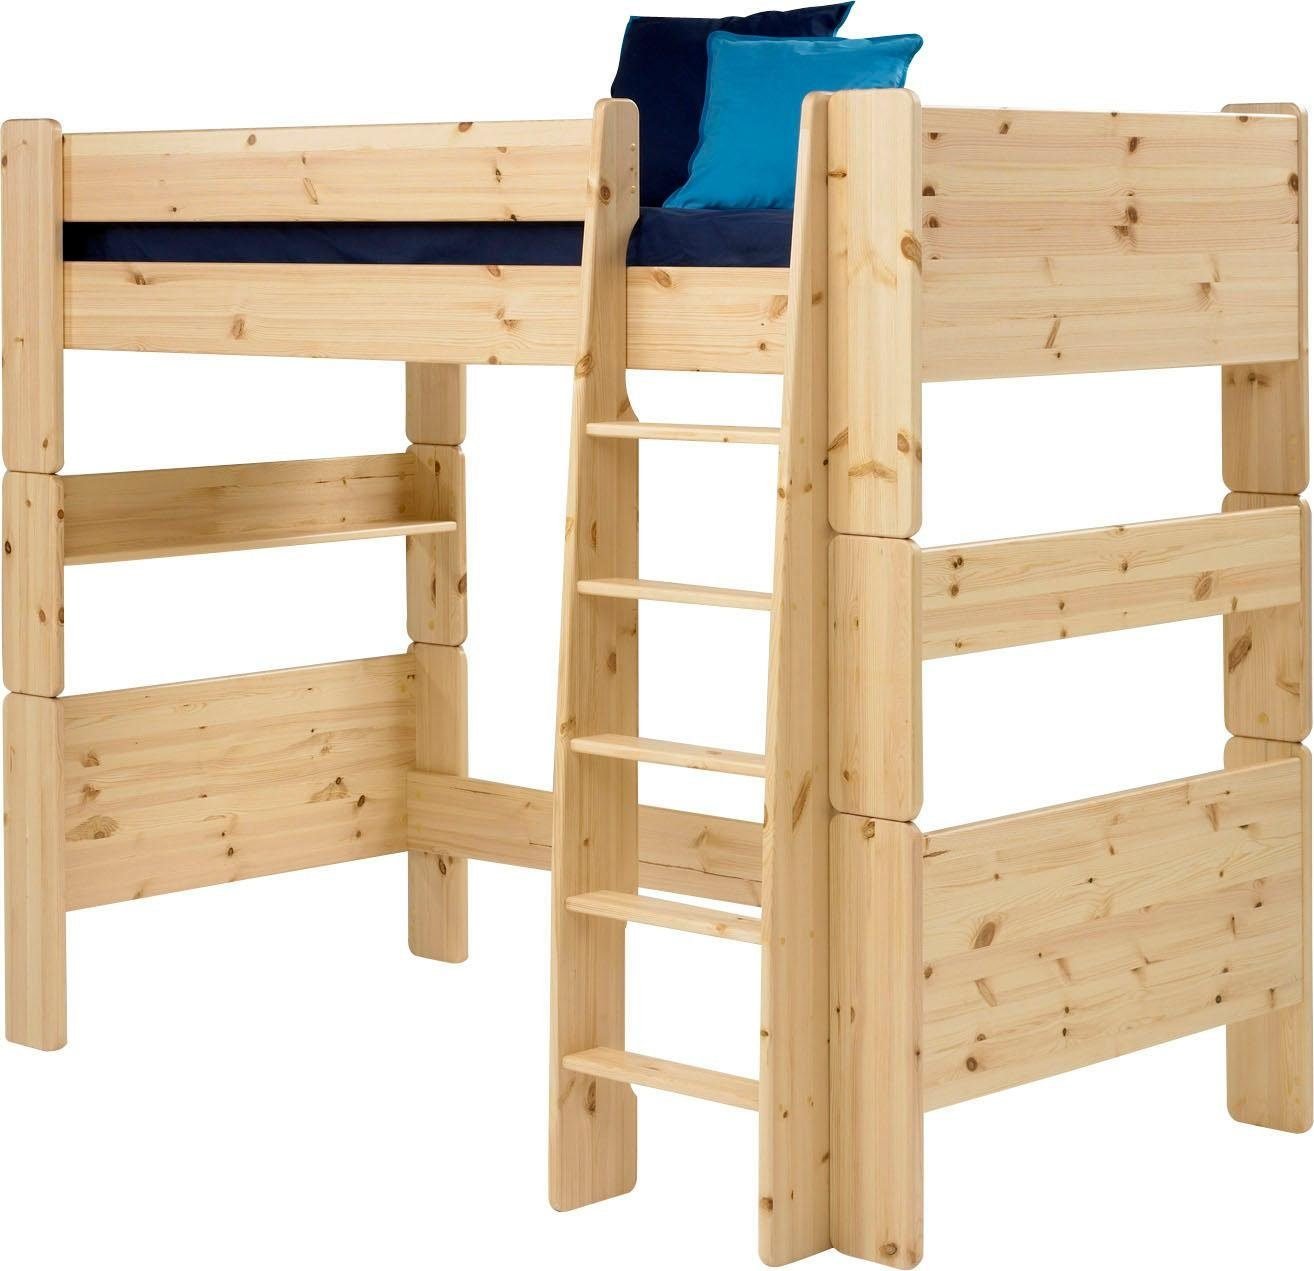 Multifunktionsbett Kinder Home Affaire Hochbett »for Kids« Mit Leiter, In